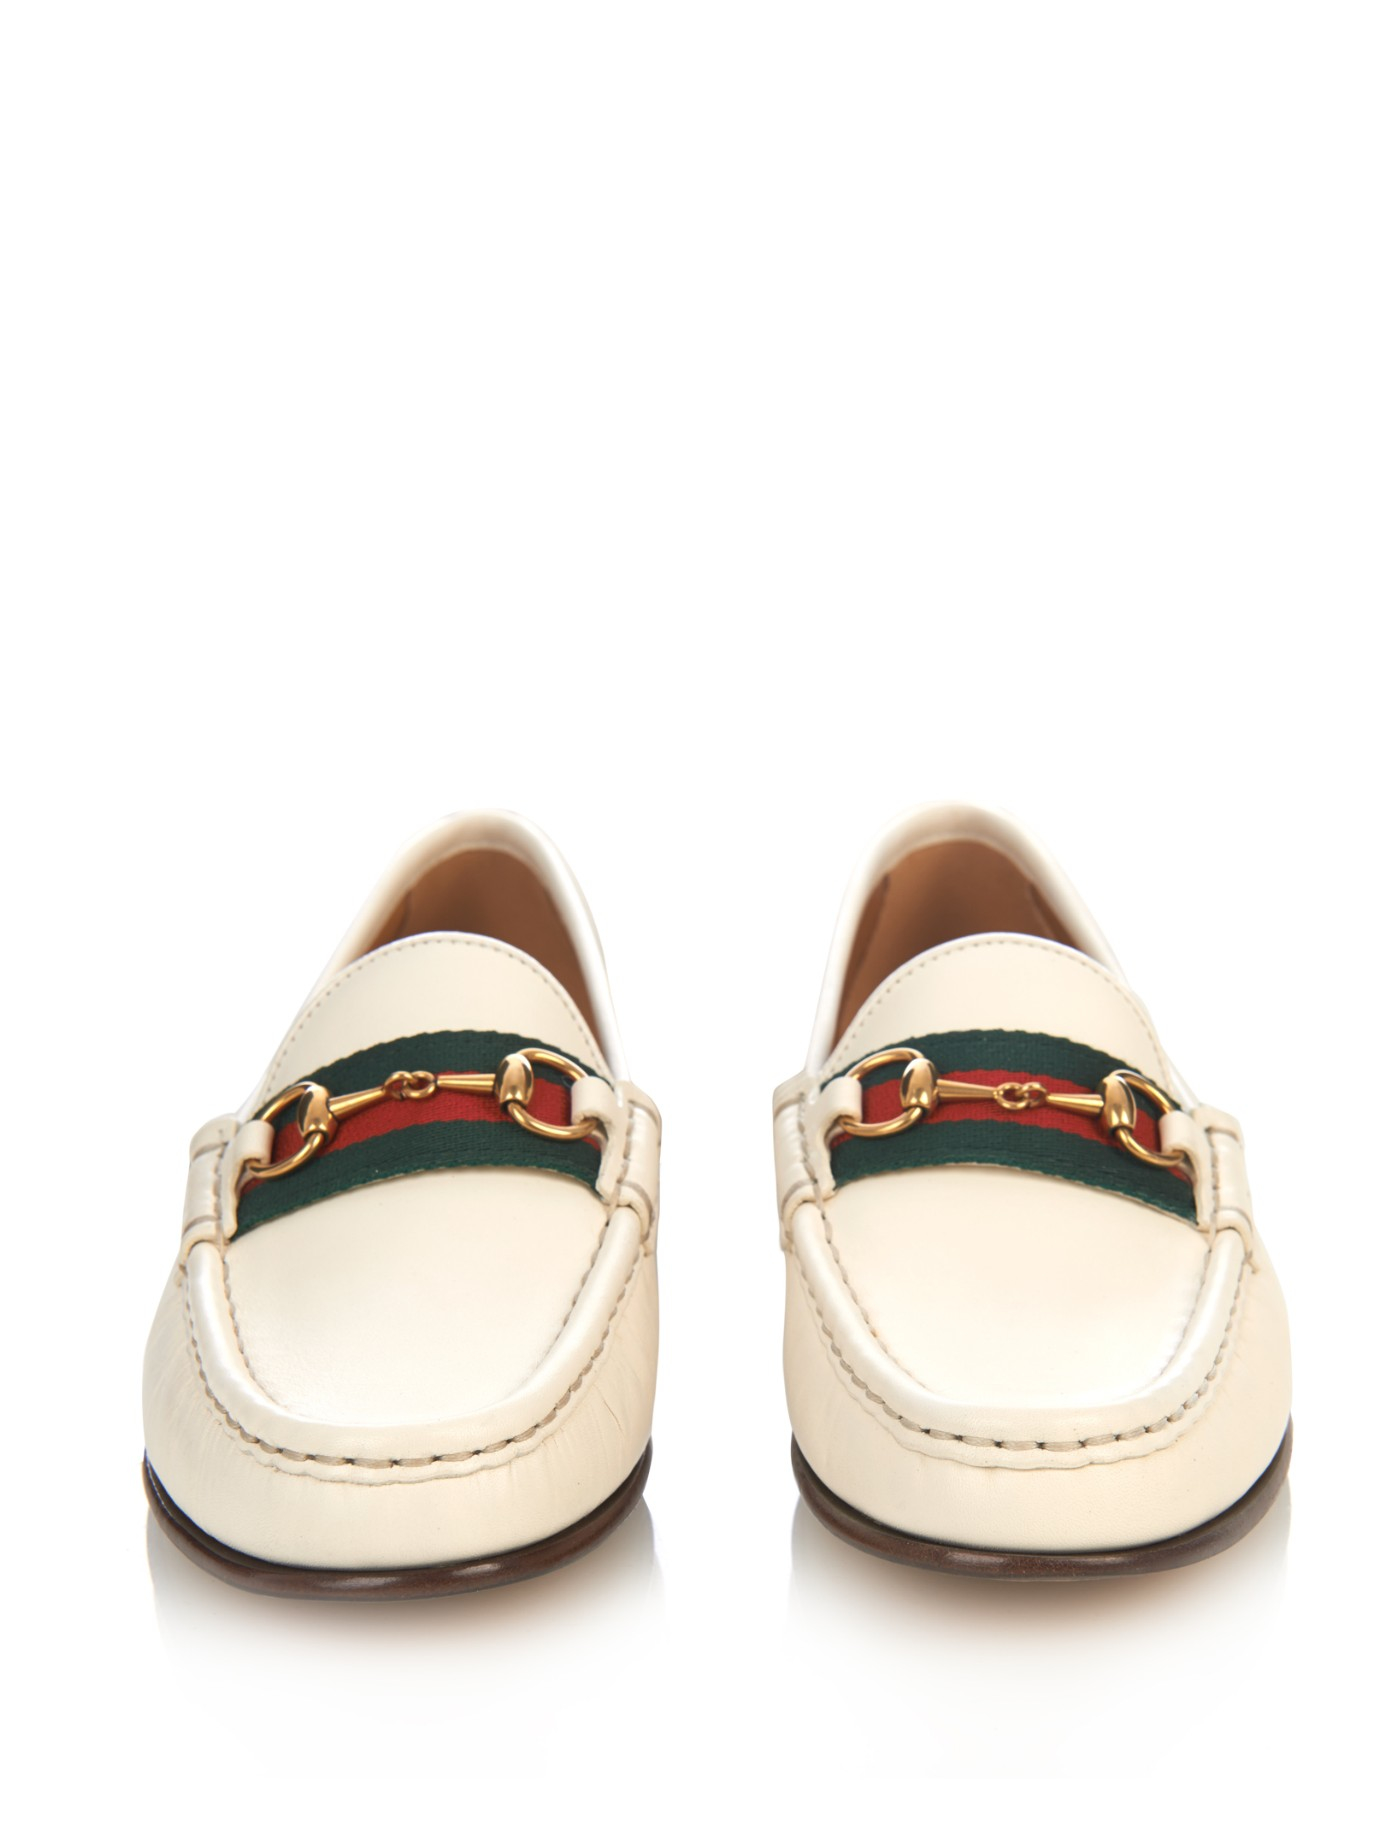 6a7b5d246fdc Lyst - Gucci Horsebit and Web Leather Loafers in White